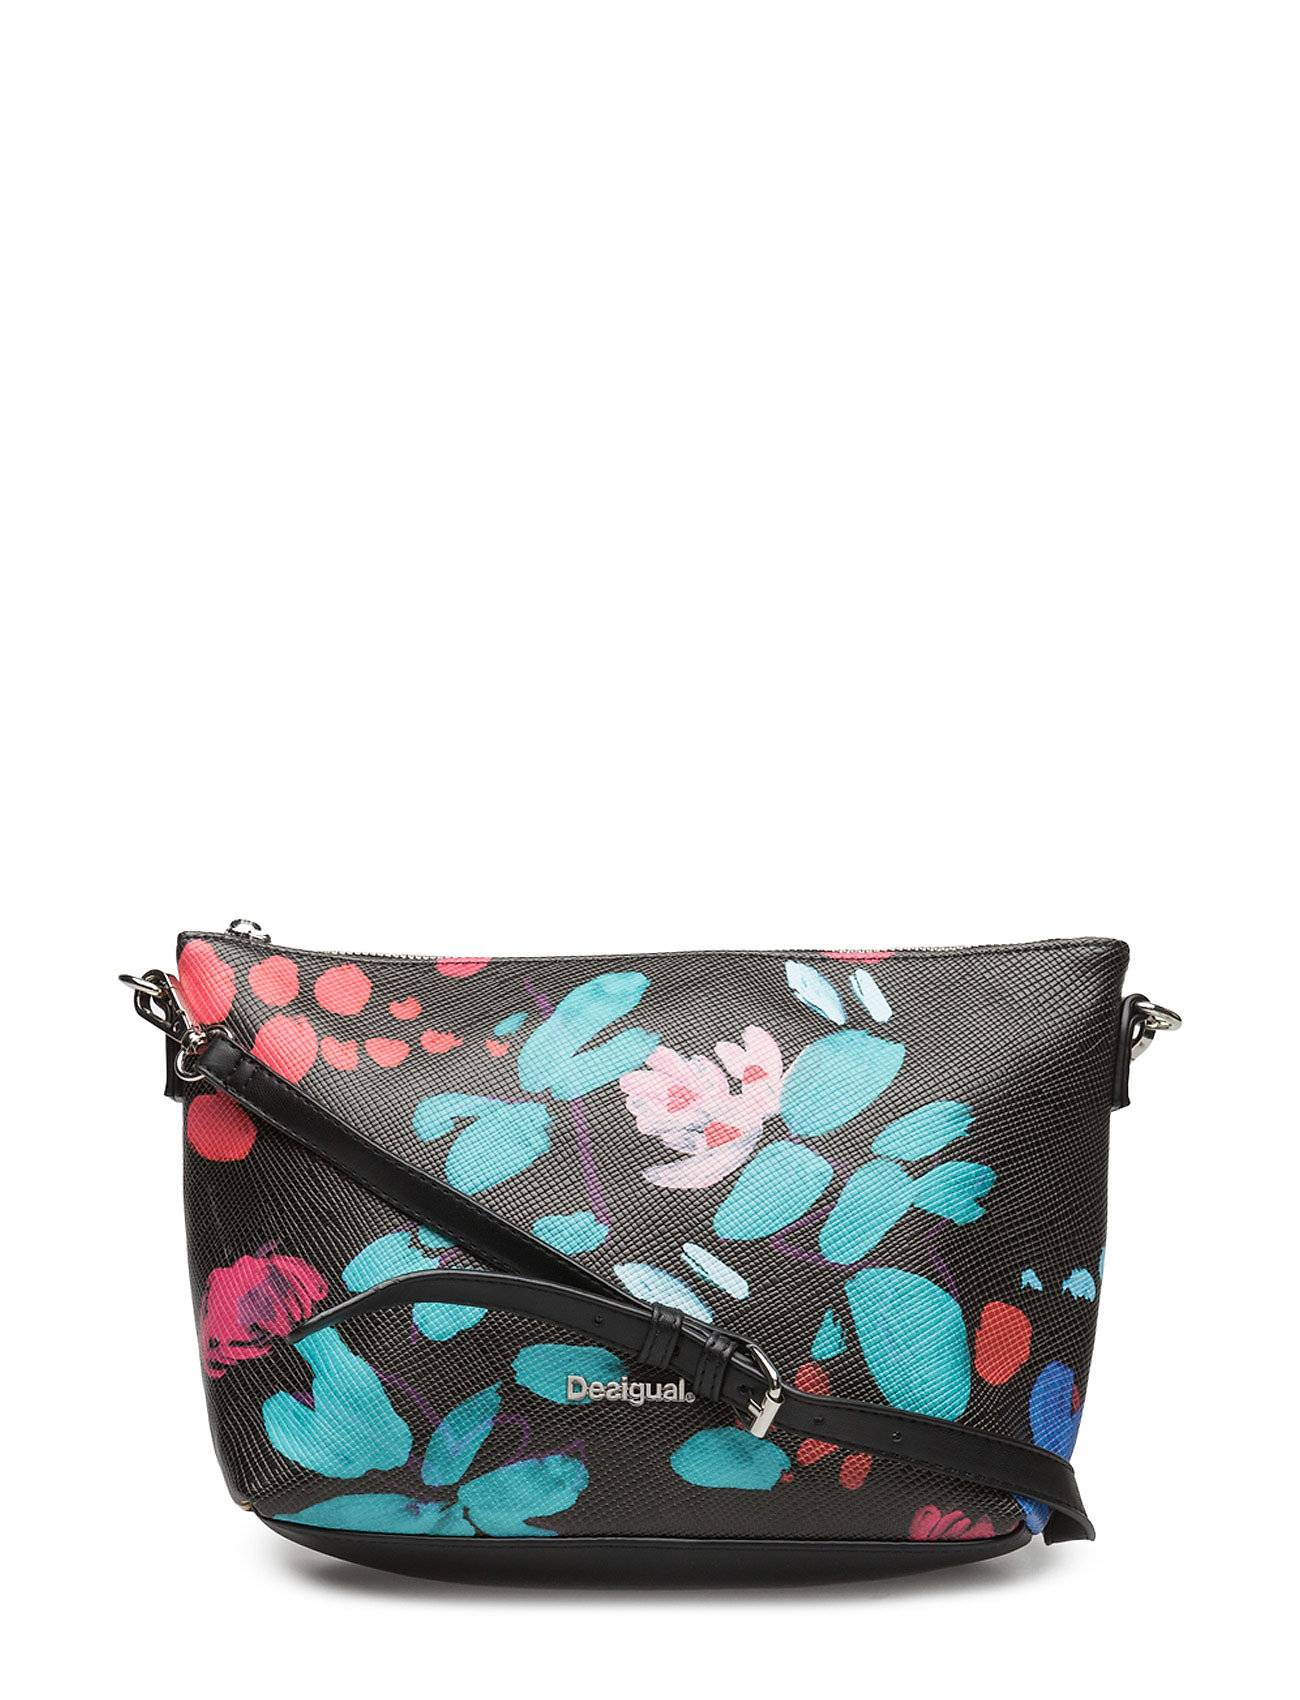 Desigual Accessories Bols Catania Misha